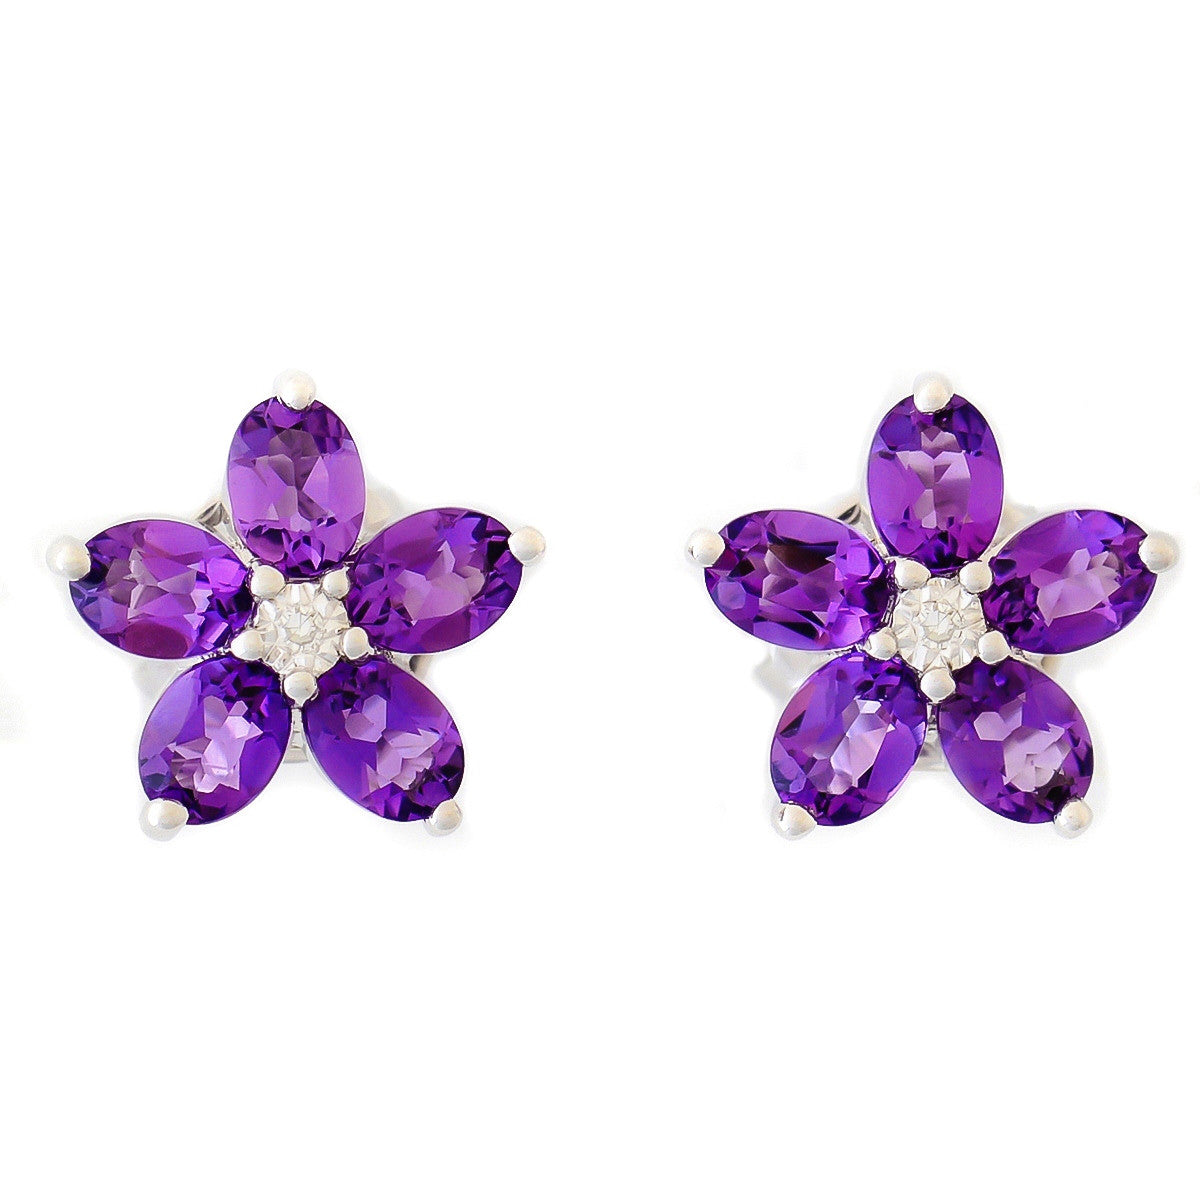 9K SOLID WHITE GOLD 1.30CT AFRICAN AMETHYST EARRINGS WITH CENTRE DIAMONDS.